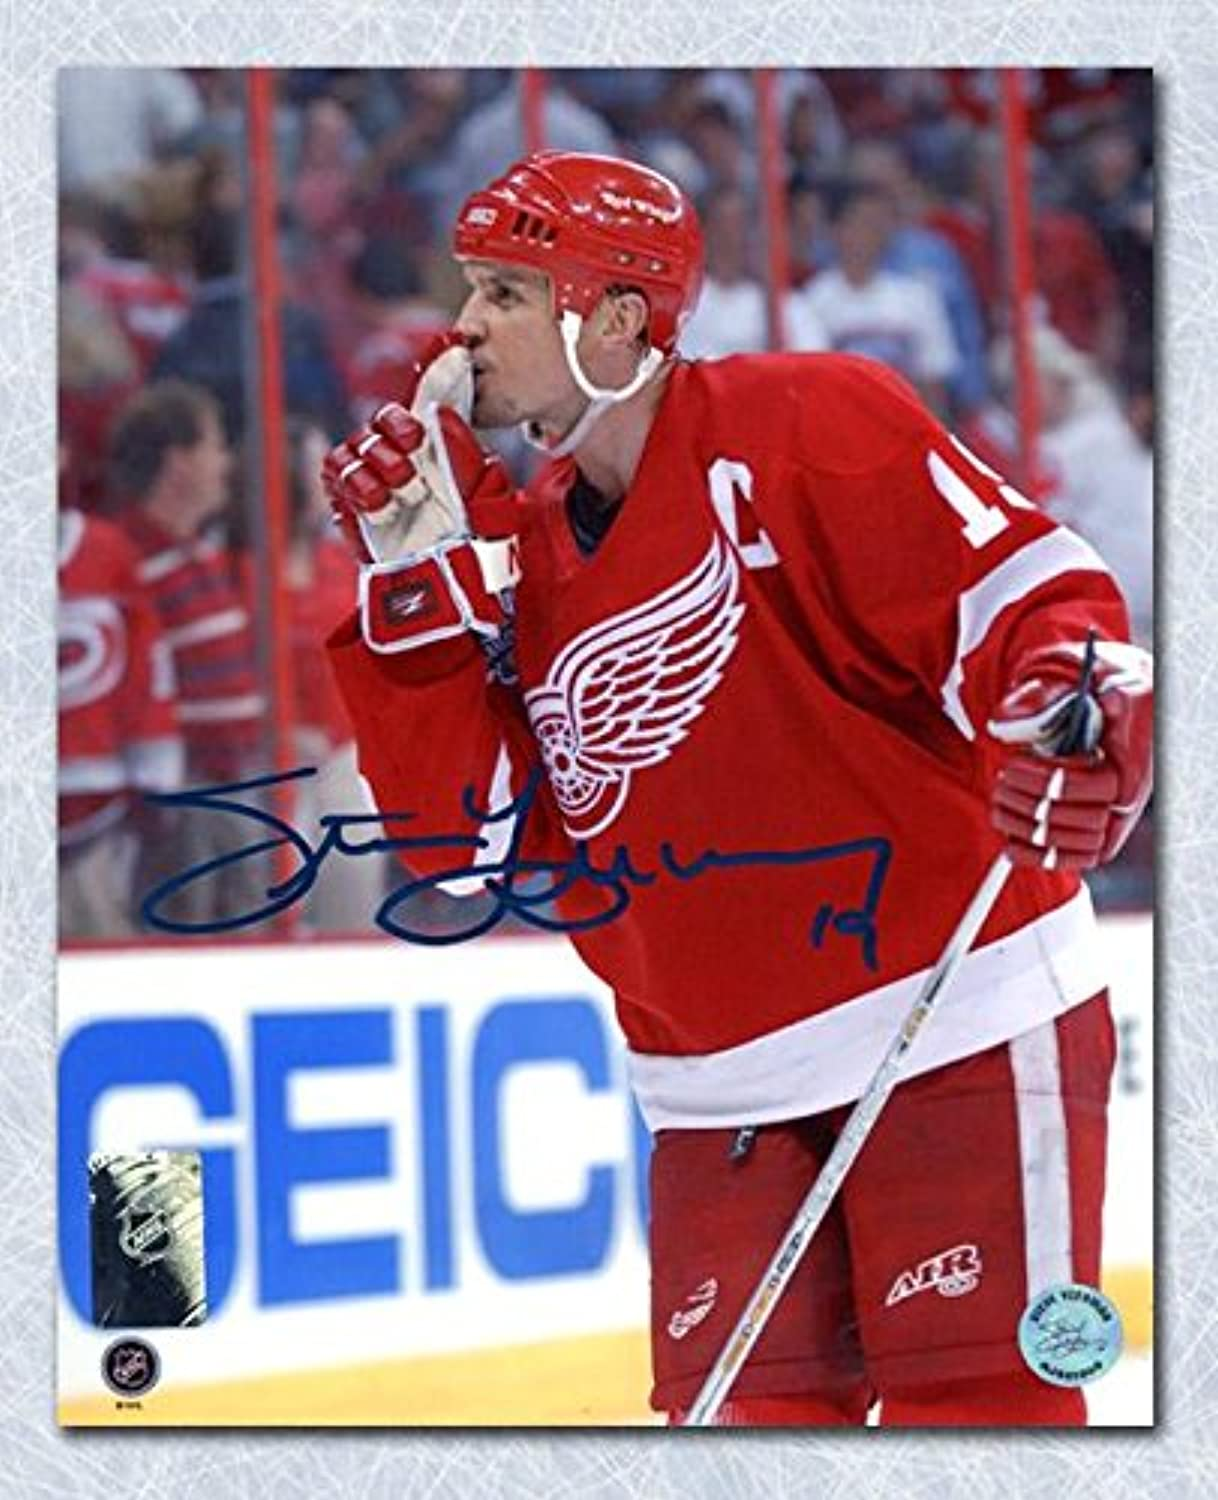 Signed Yzerman PhotographQuiets Rival Crowd 8x10Autographed NHL Photos